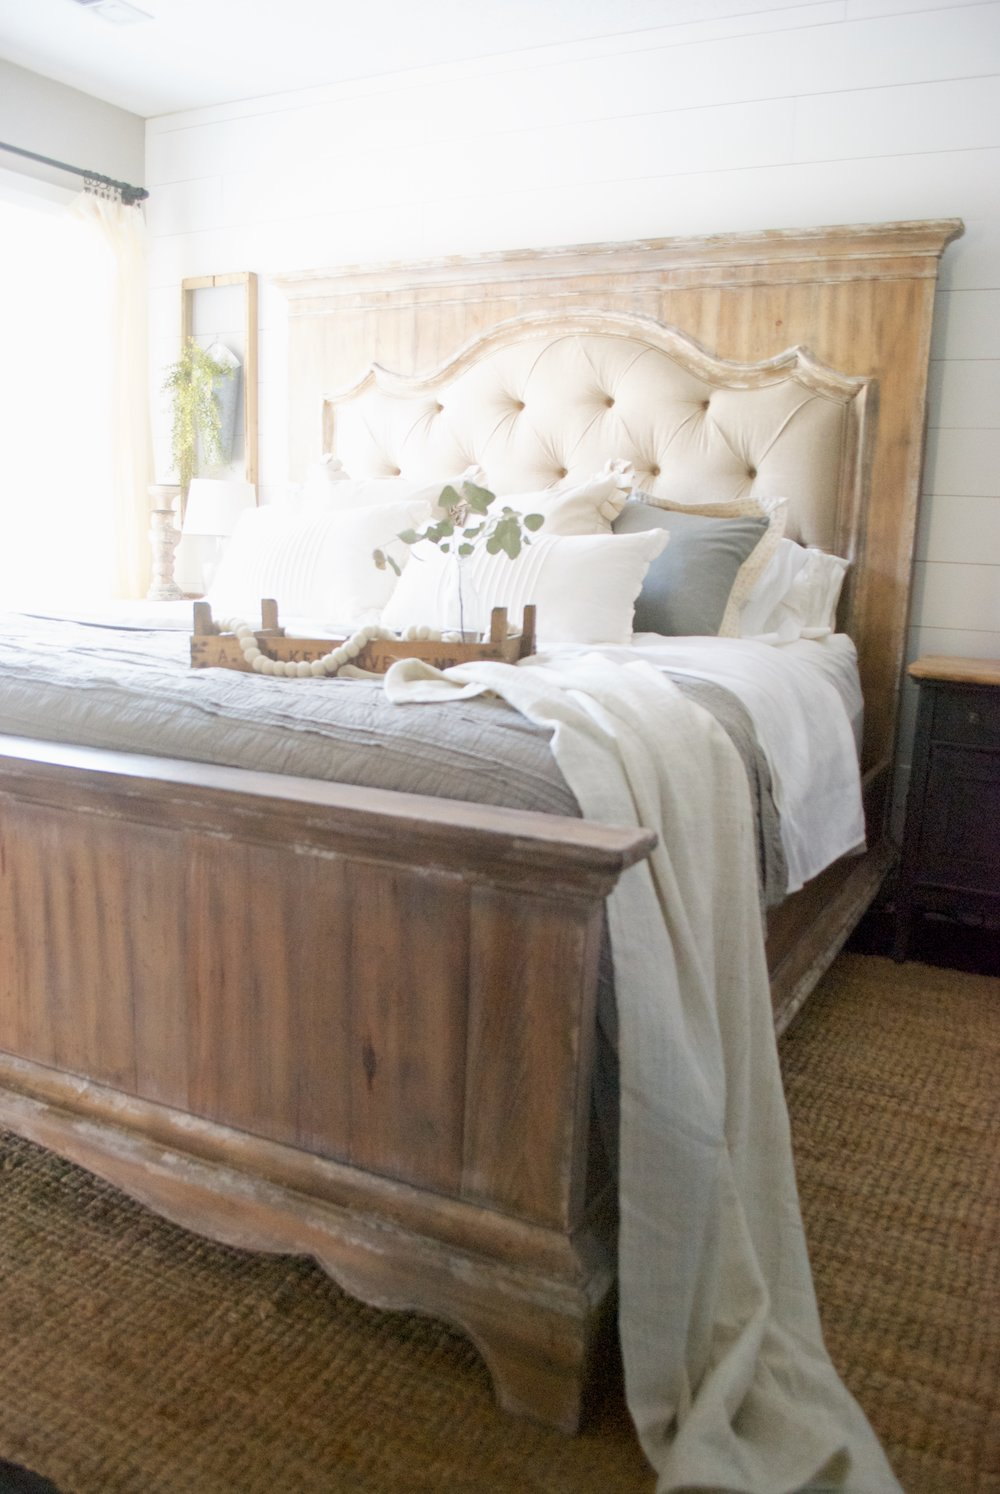 French Country Farmhouse Style Bed  Farmhouse Style Bedroom  Plum Pretty  Decor And Design